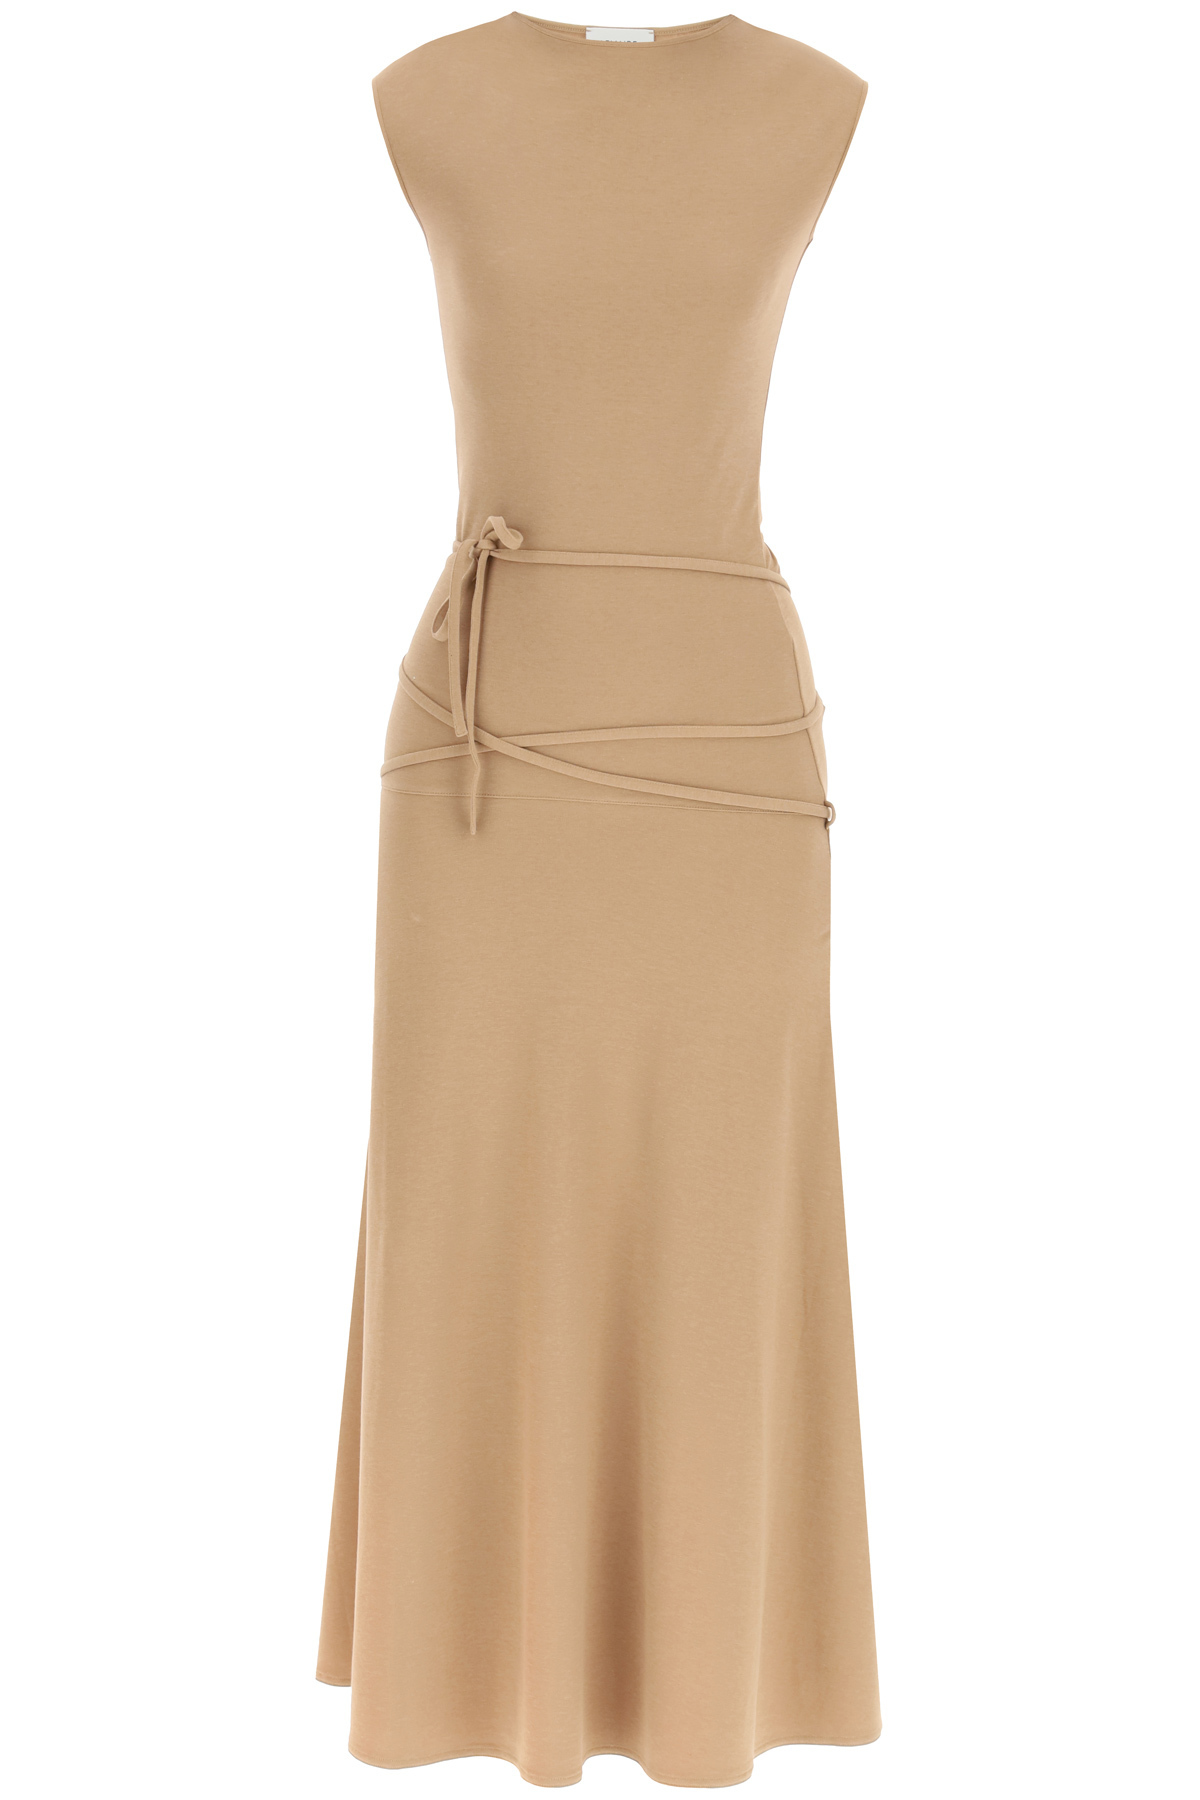 Lemaire SLEEVELESS DRESS IN CREPE JERSEY